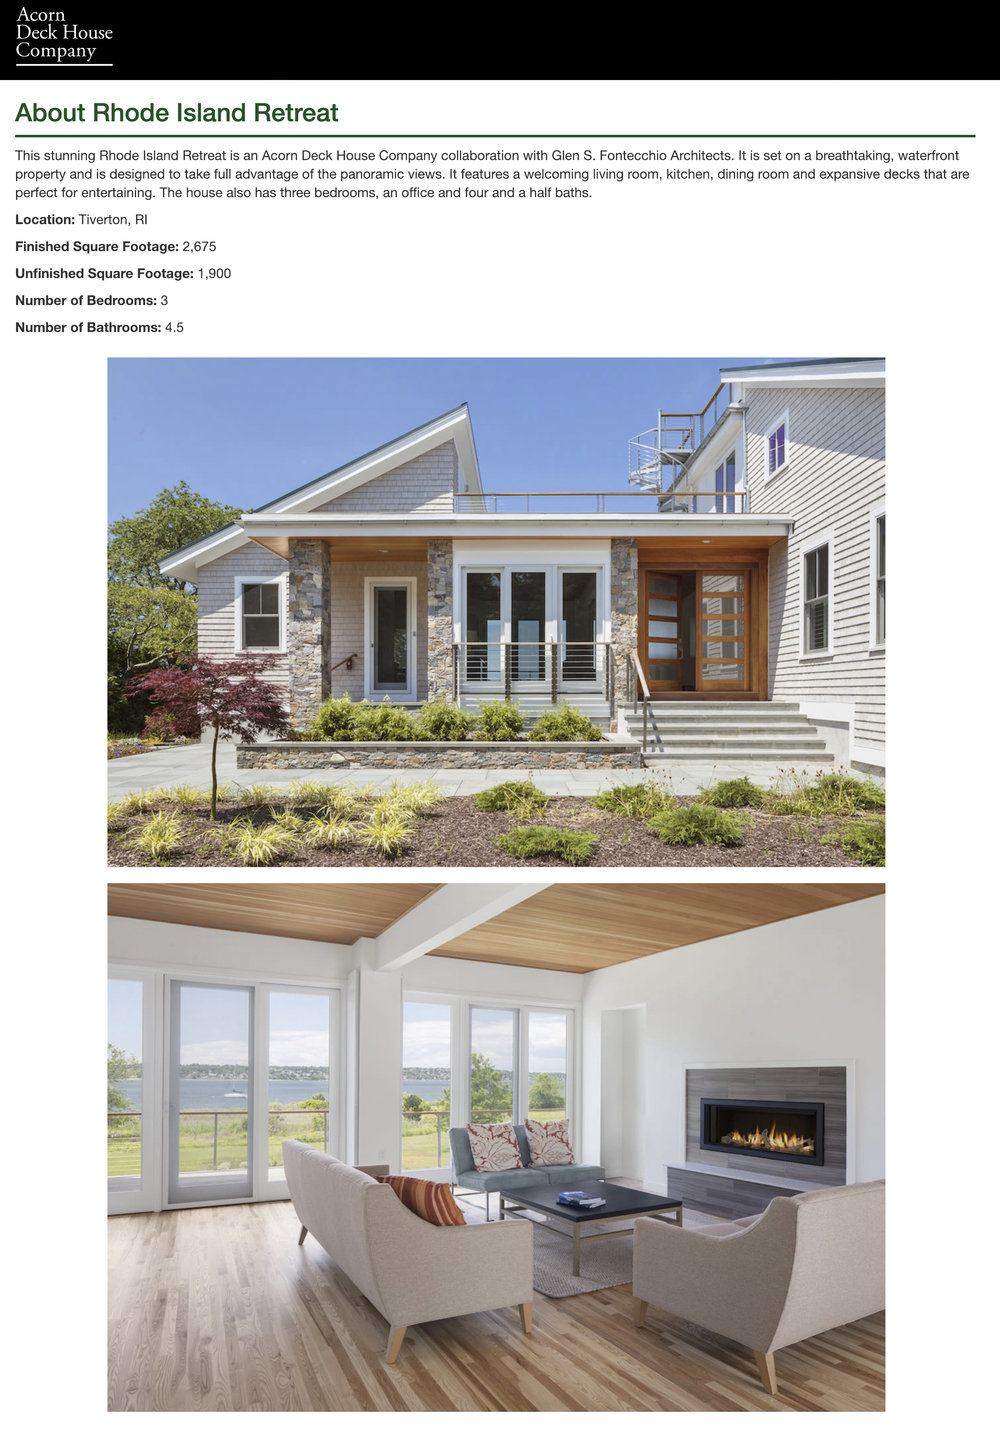 Deckhouse Website Link_01-14-19.jpg